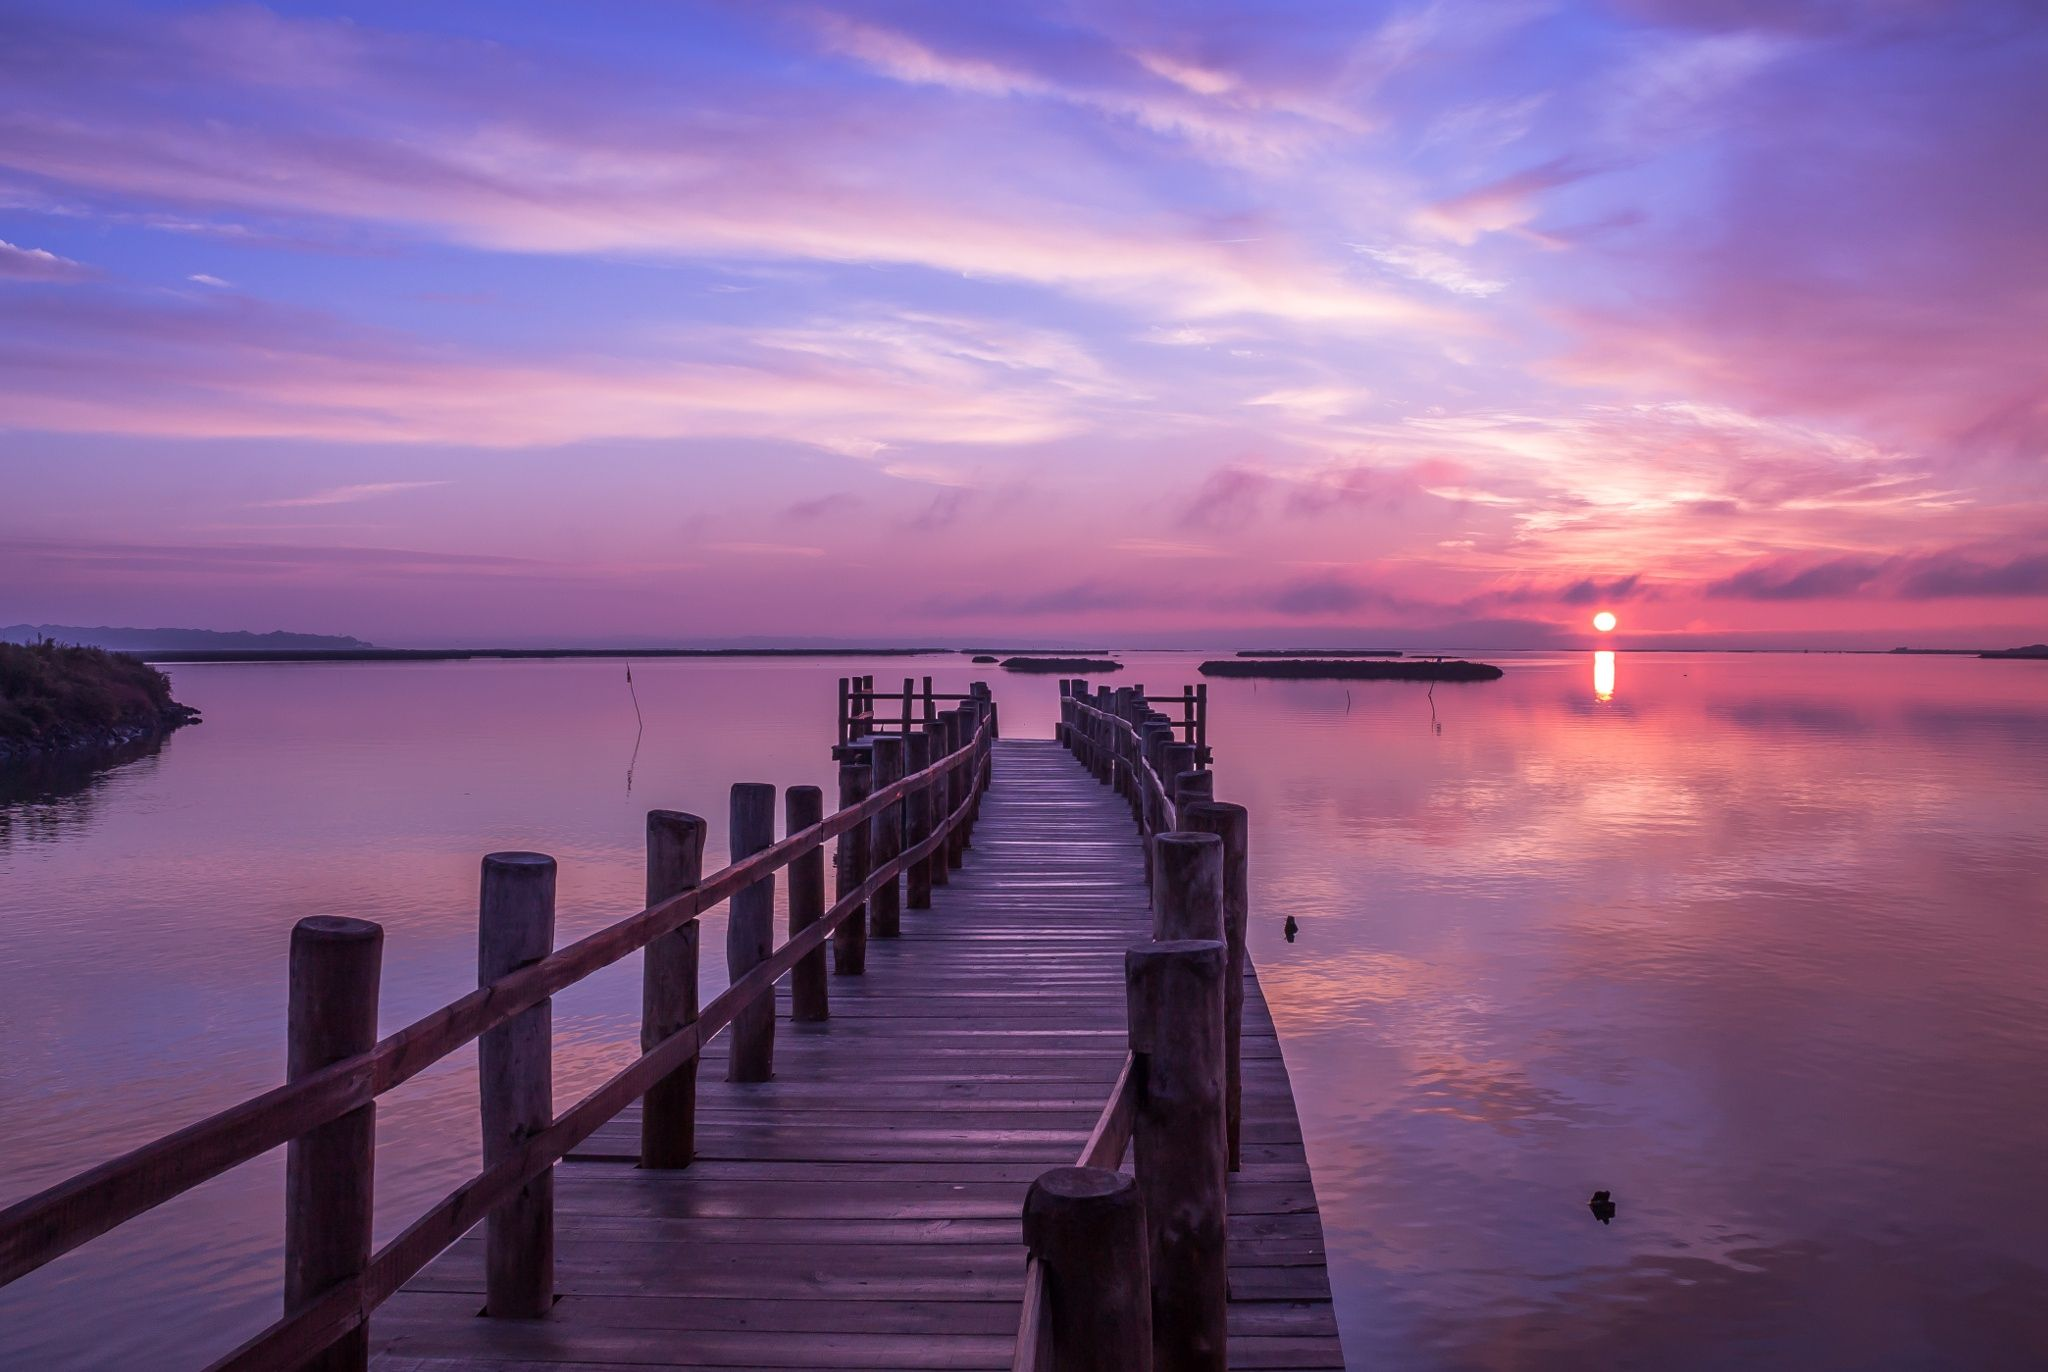 Mourisca by Ricardo Mateus on 500px